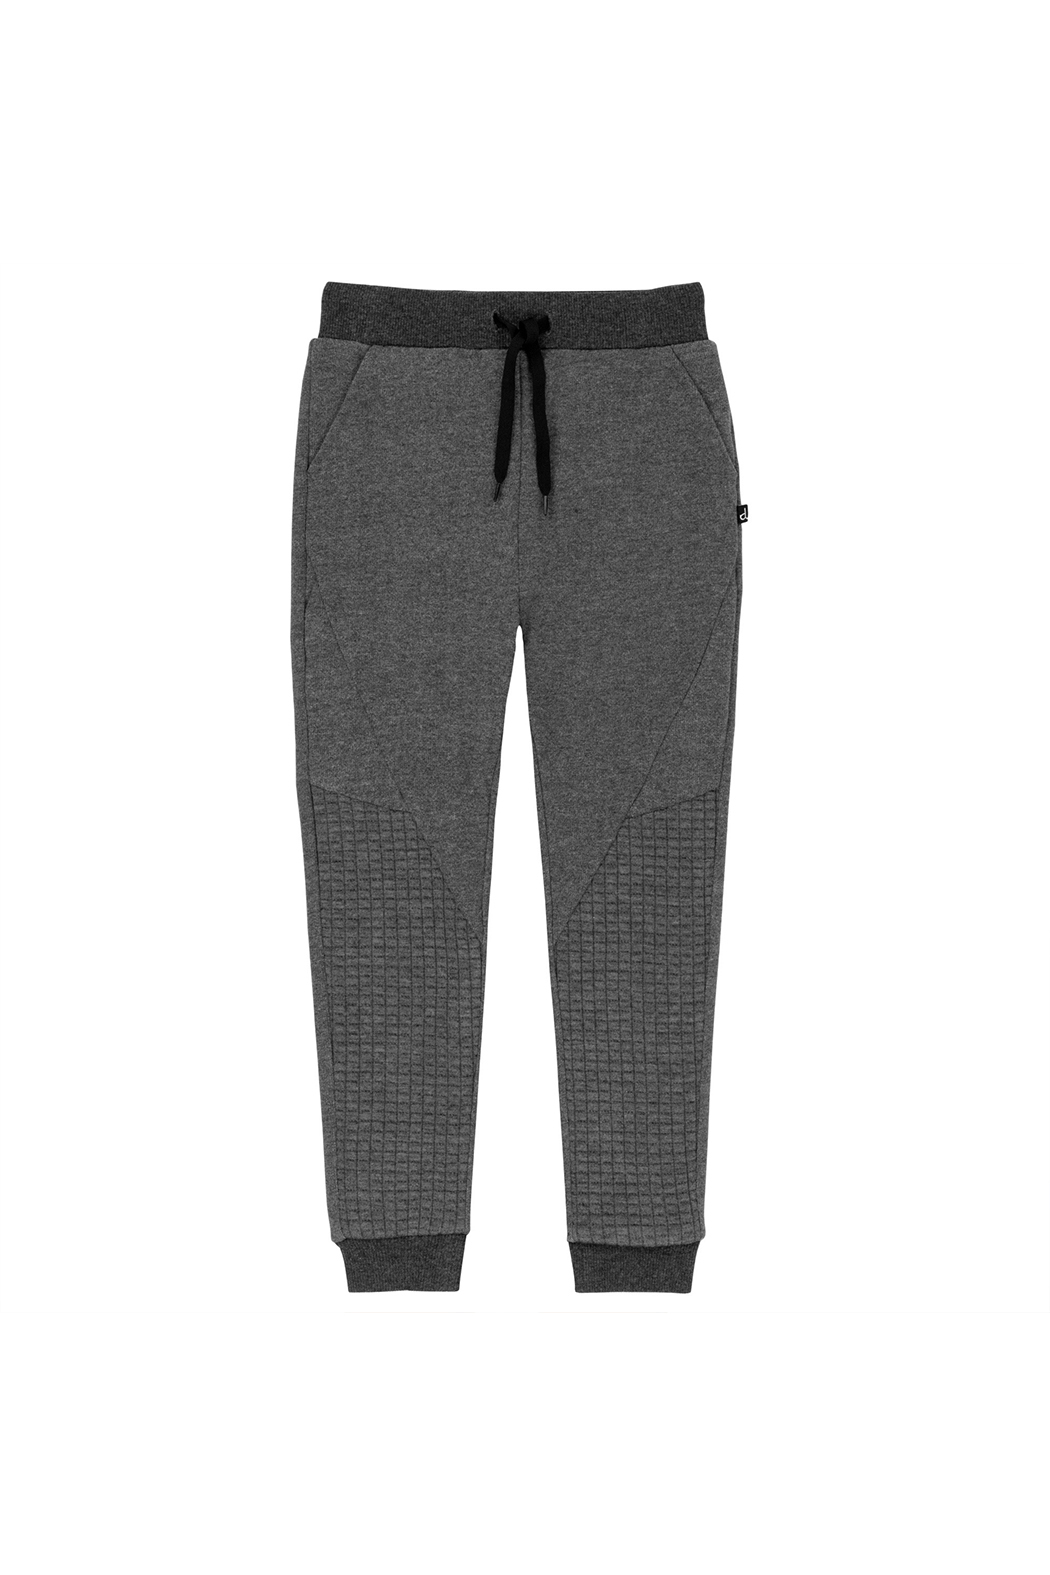 Deux Par Deux Quilted French Terry Jogger Pant - Front Cropped Image